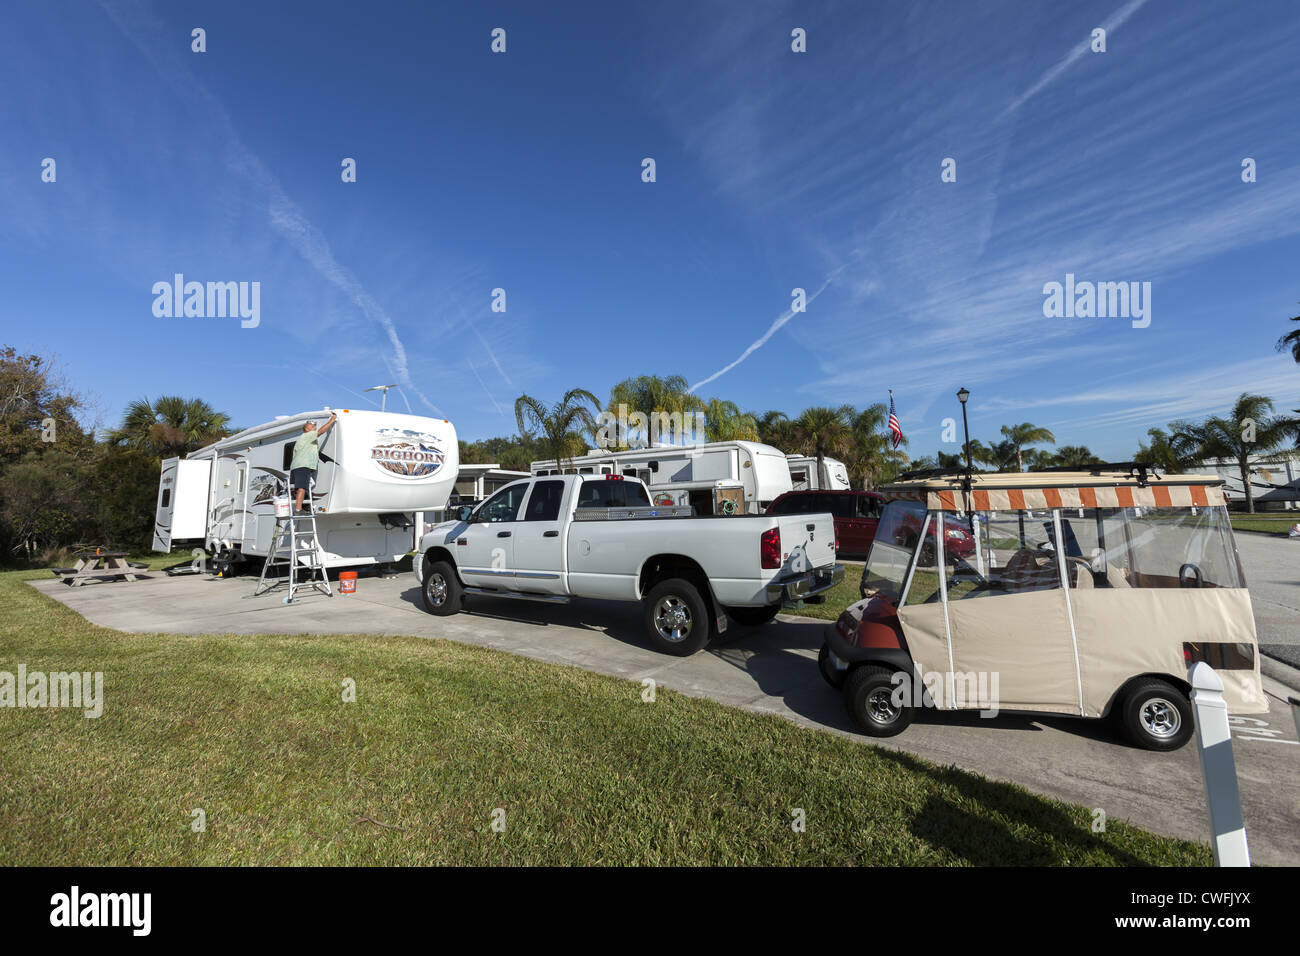 Man cleaning fifth-wheel Rv with one ton white dodge truck and golf cart - Stock Image